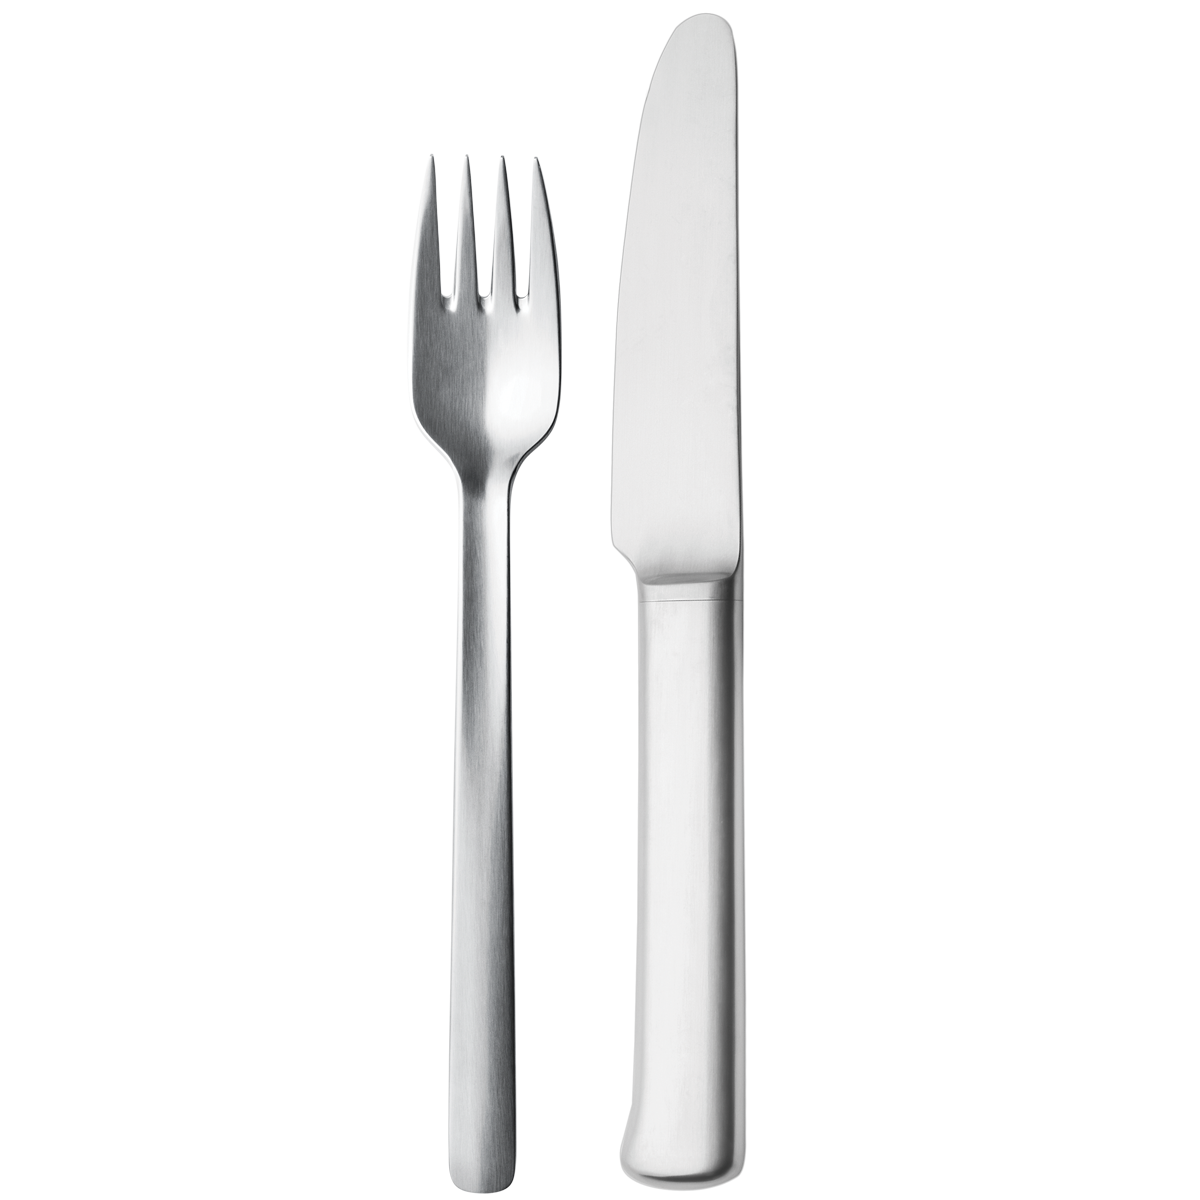 Hands clipart knife. Fork and two isolated